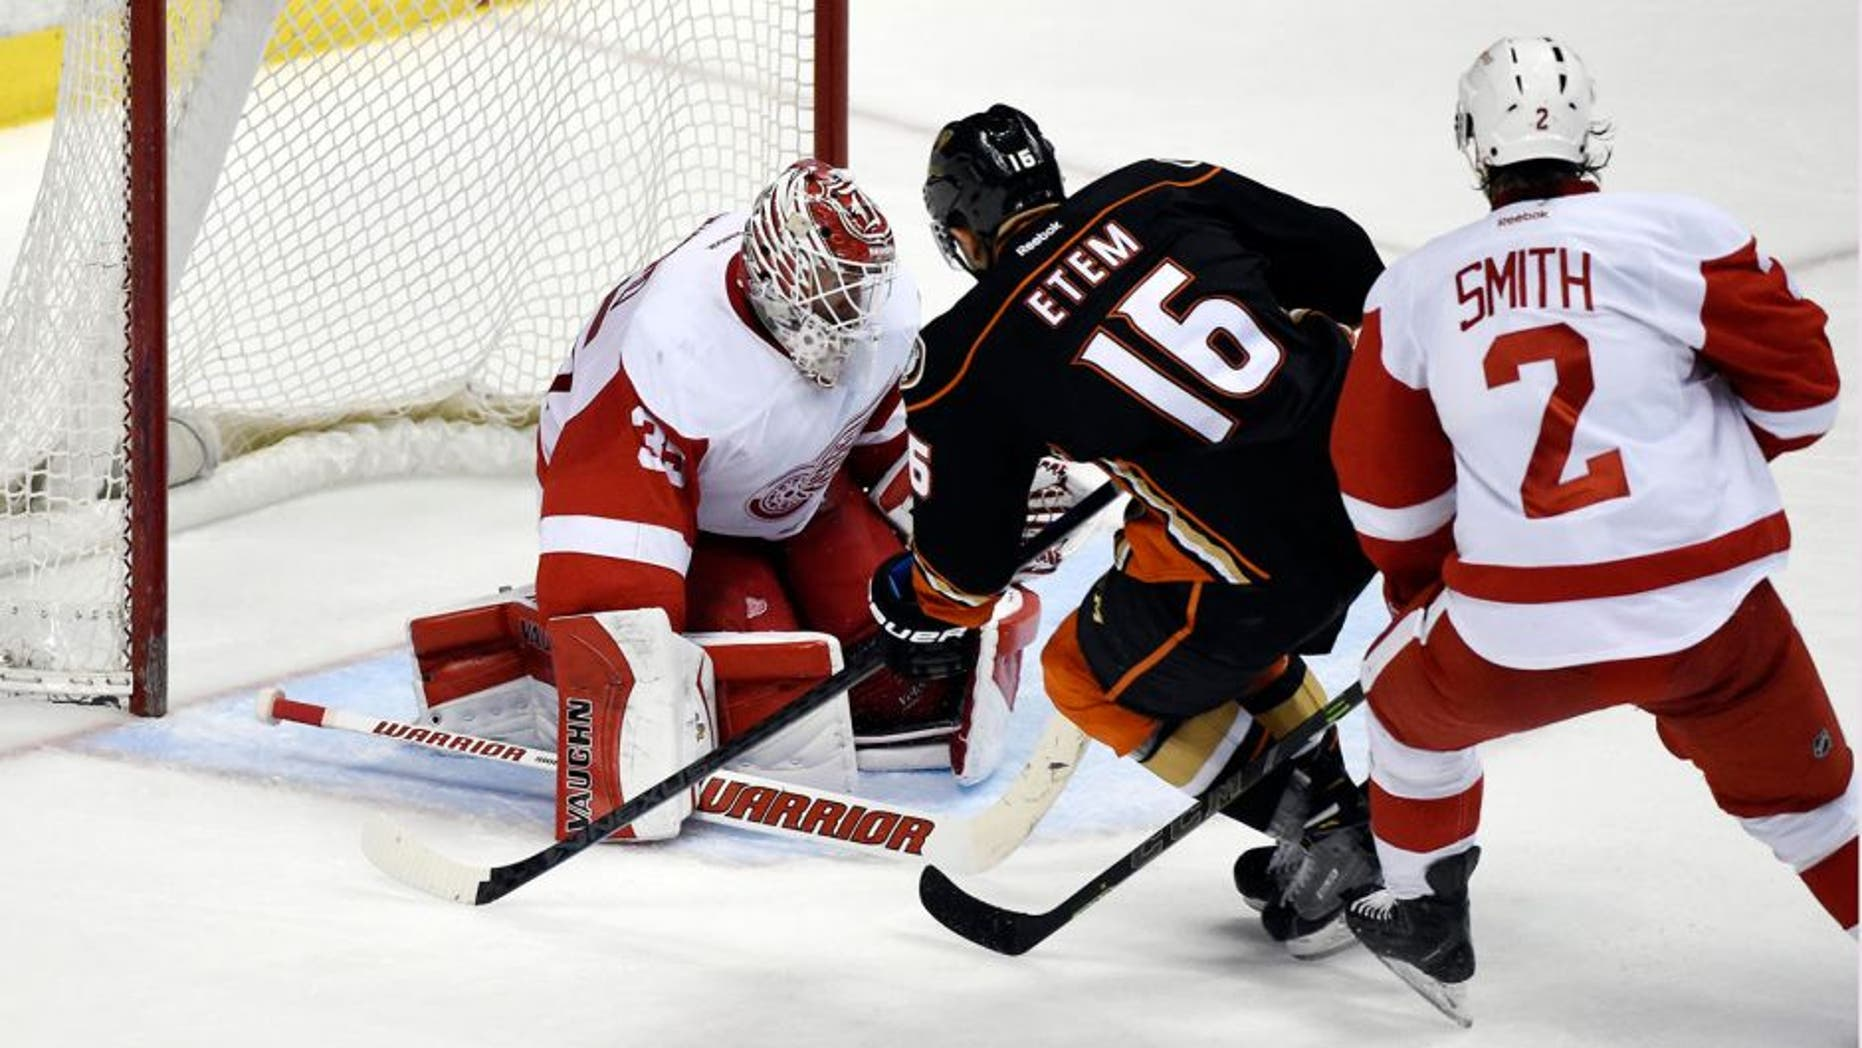 Feb 23, 2015; Anaheim, CA, USA; Anaheim Ducks right wing Emerson Etem (16) scores a goal past Detroit Red Wings goalie Jimmy Howard (35) and defenseman Brendan Smith (2) in the third period during the game at Honda Center. Mandatory Credit: Richard Mackson-USA TODAY Sports